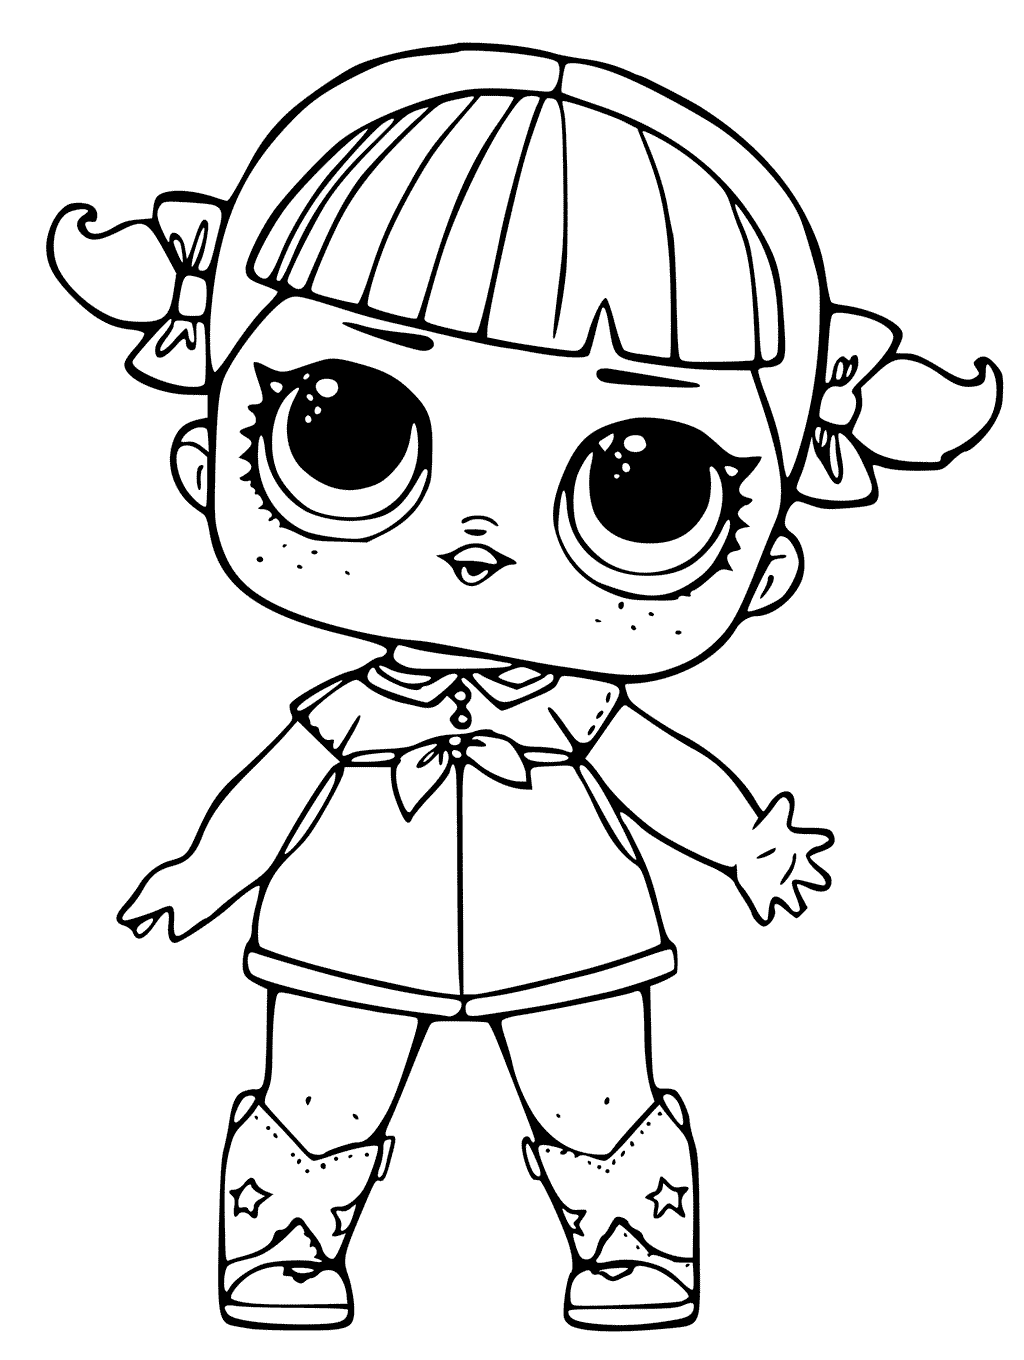 LOL Surprise Doll Coloring Pages Cherry Lol dolls, Doll